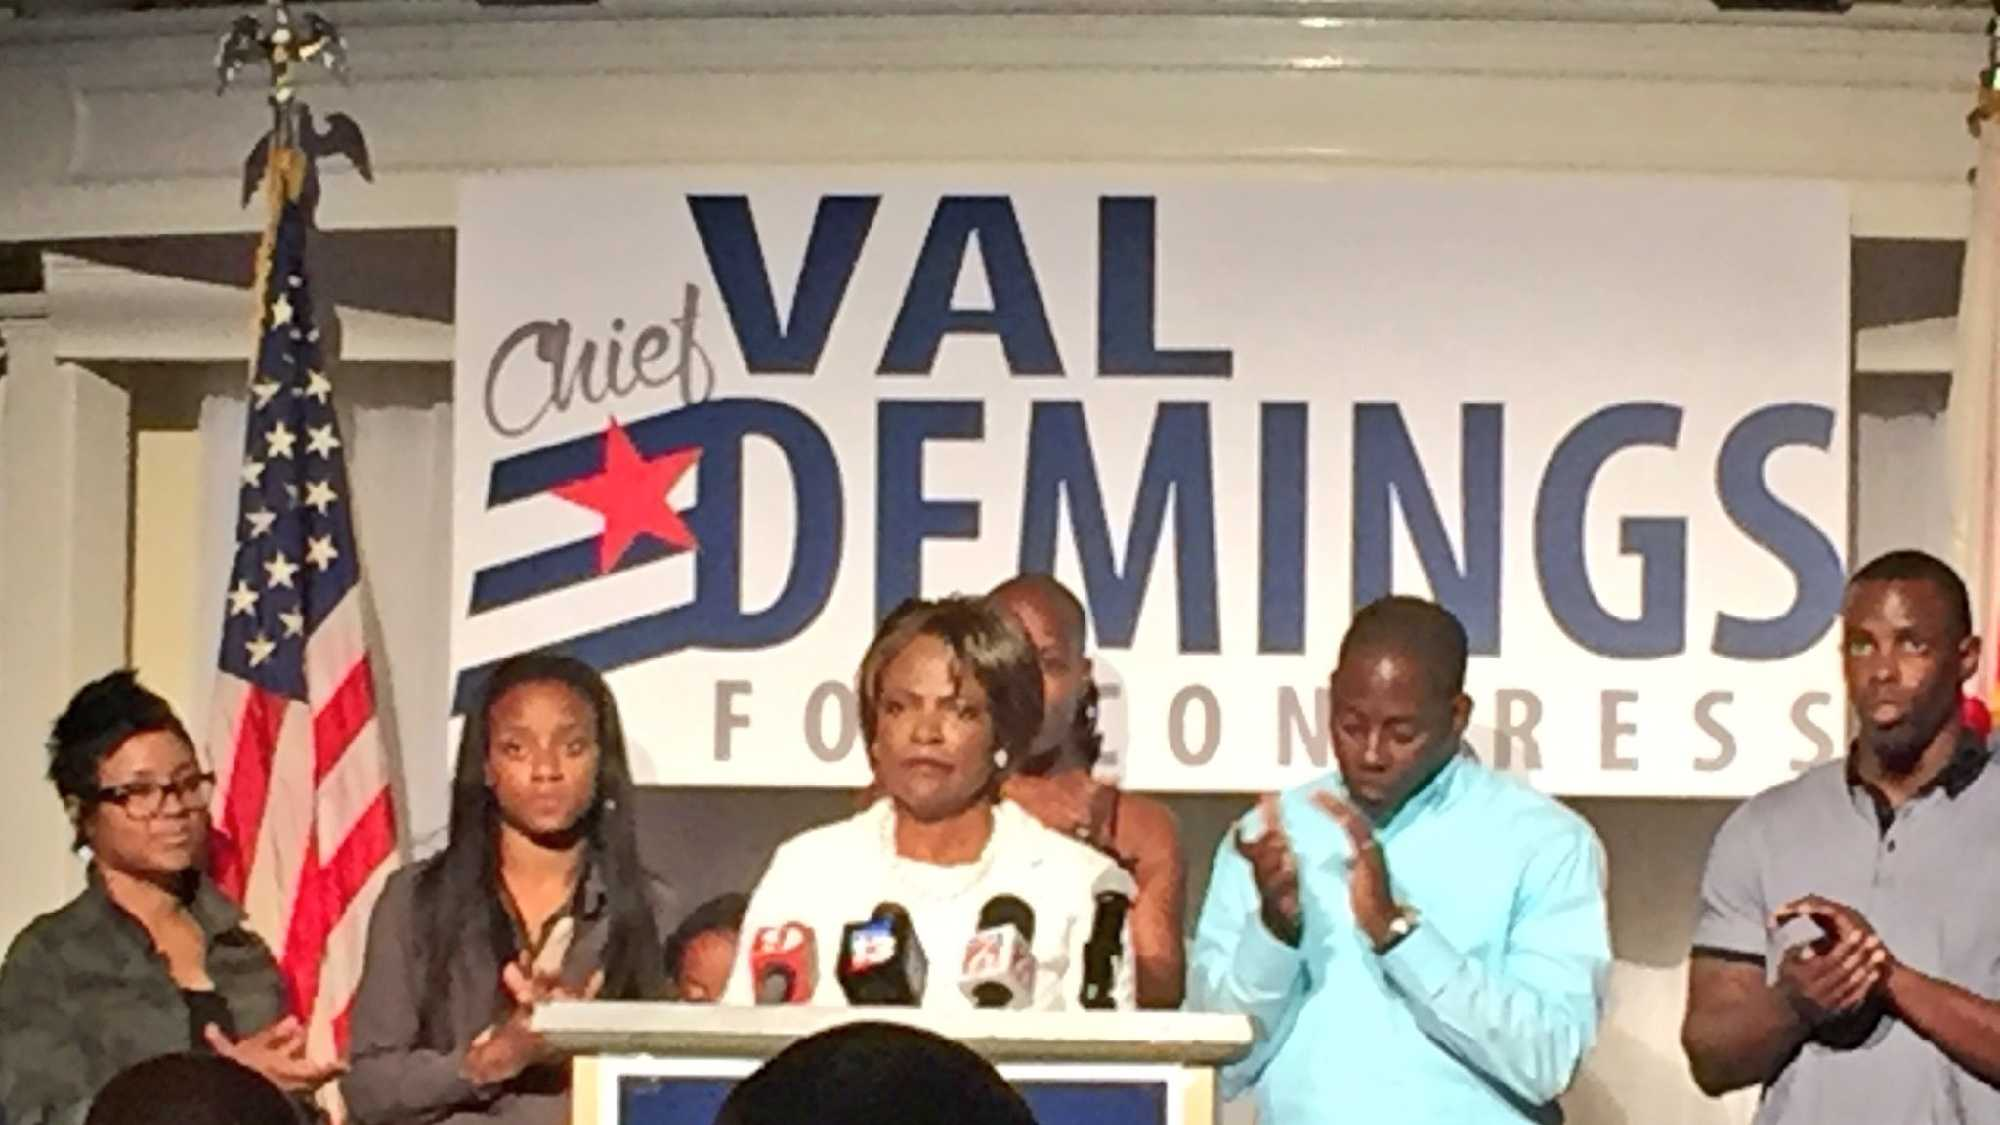 val demings.jpg